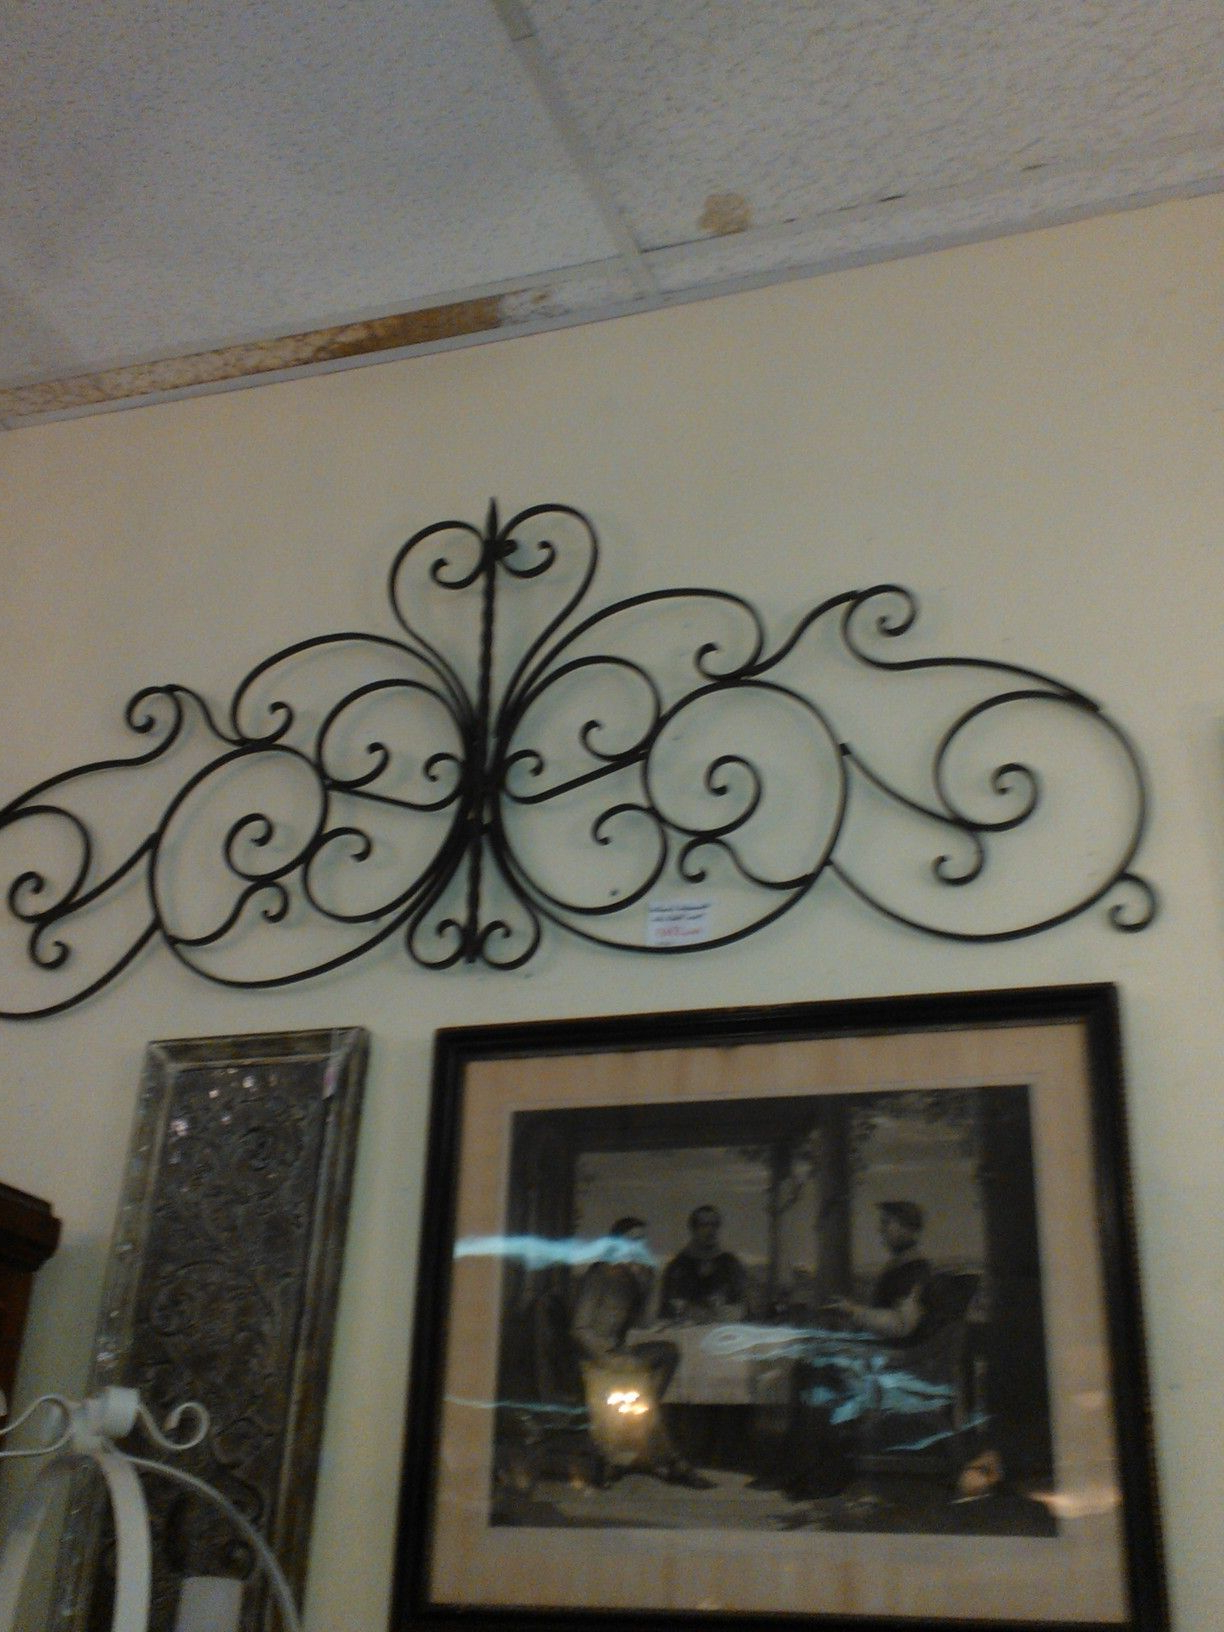 Antique Iron Alloy Wall Décor Pertaining To Most Popular Pinmaurolouvemazeredo On Charming (View 7 of 20)